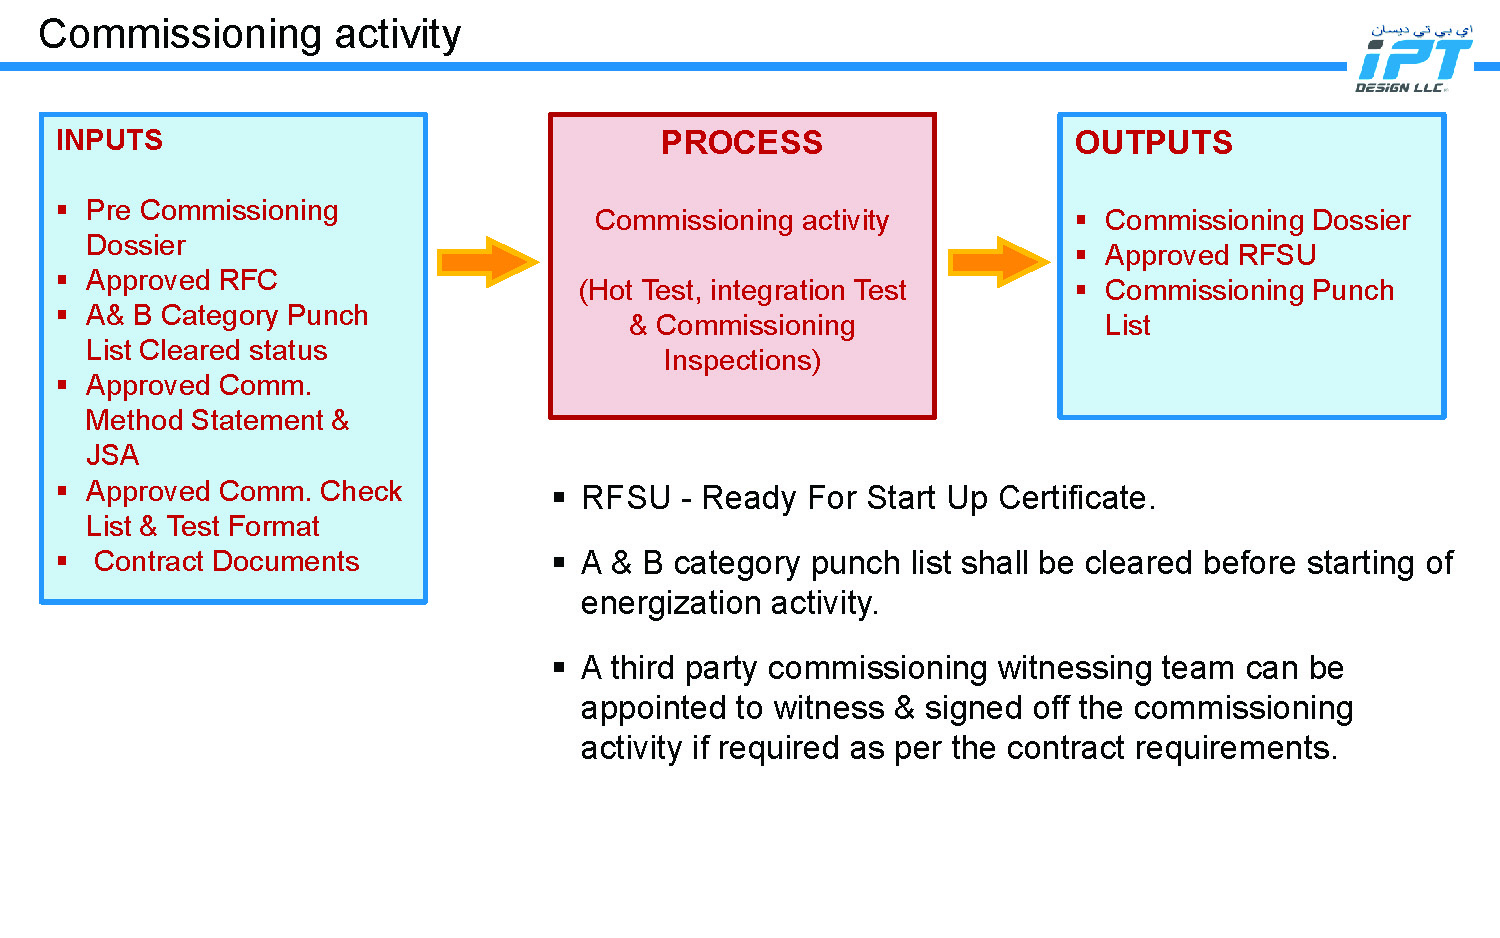 IPT Design LLC - Commissioning Management Process_Page_09.jpg